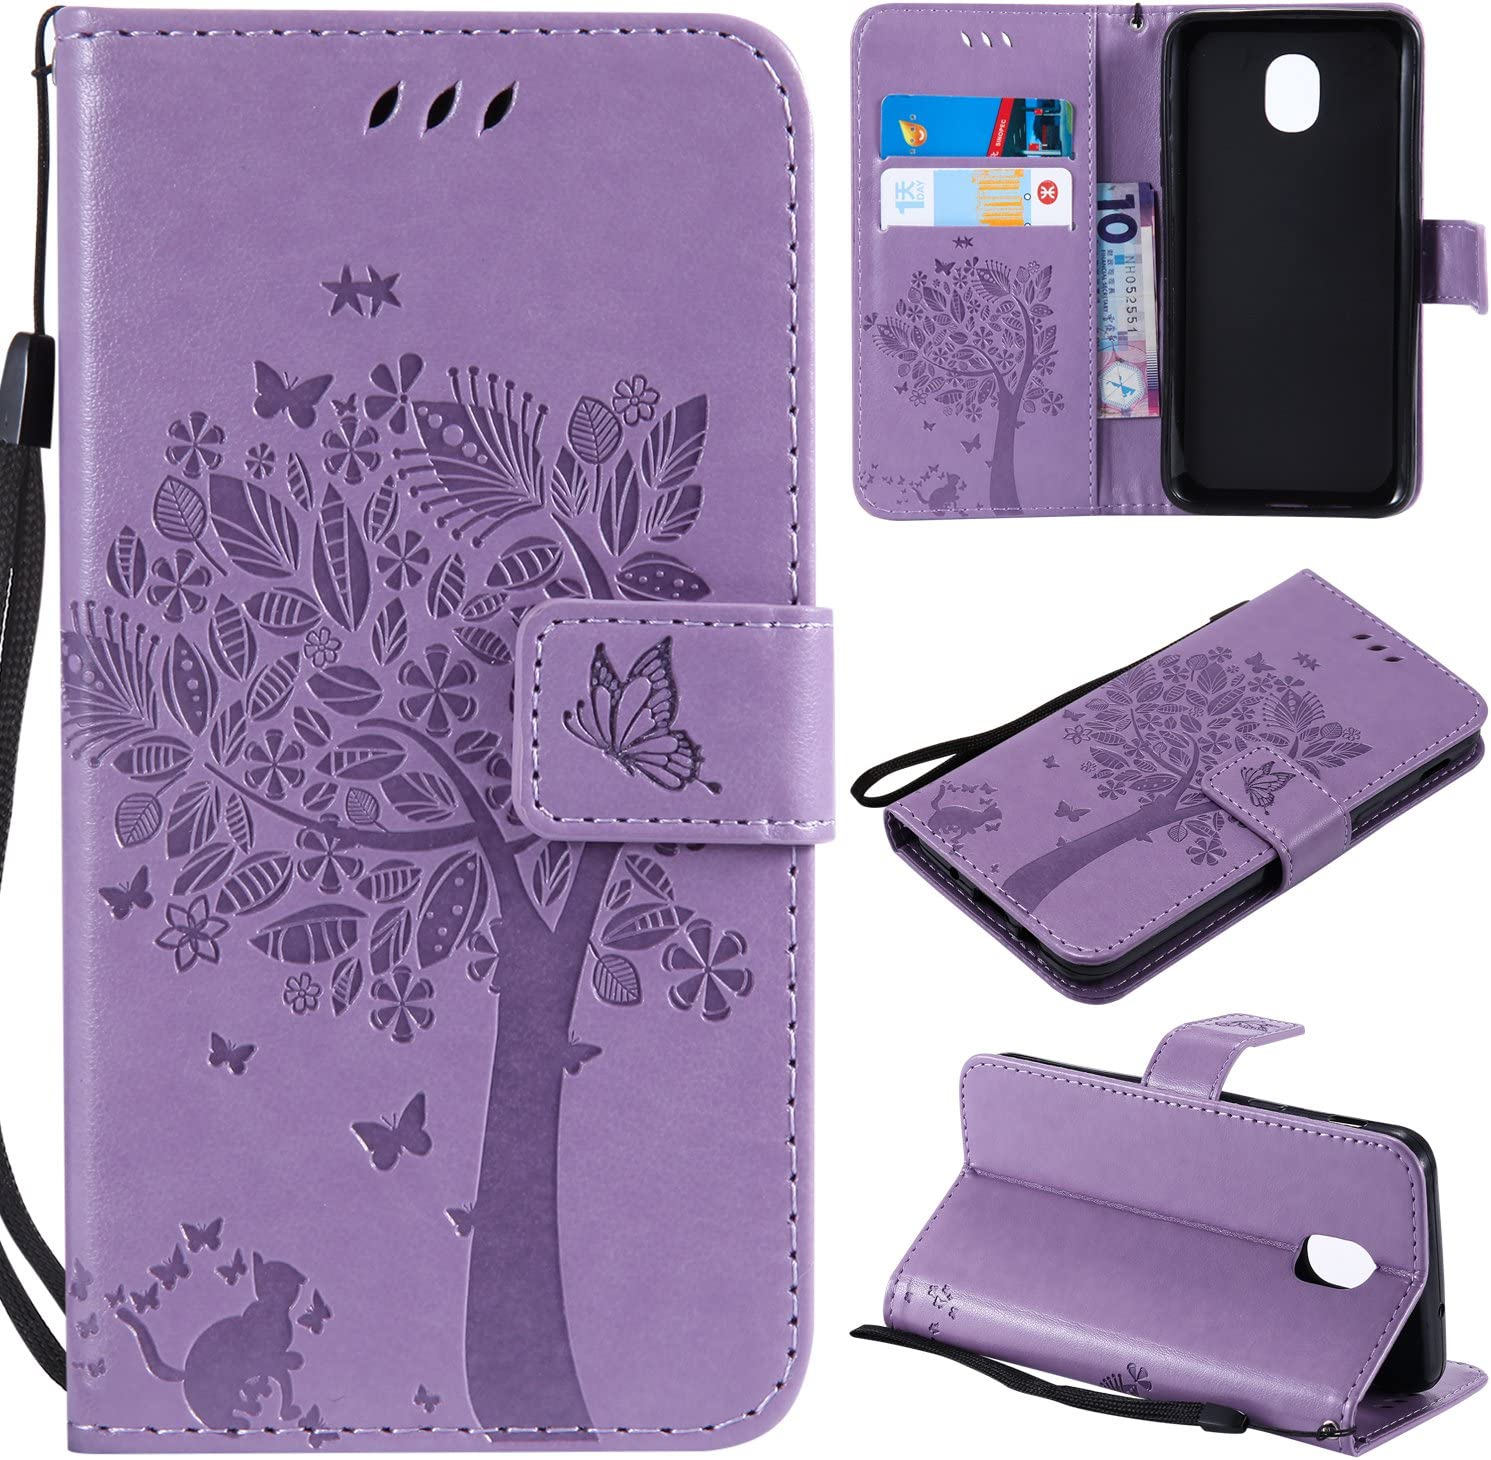 Galaxy J3 2018/J3 V 2018/J337/Express Prime 3/J3 Star/J3 Orbit/J3 Achieve/J3 Prime 2/Amp Prime 3/Sol 3 Case,PU Leather Wallet Embossed Floral Tree Cat Case Kickstand Flip Case Card Holder Light Purple